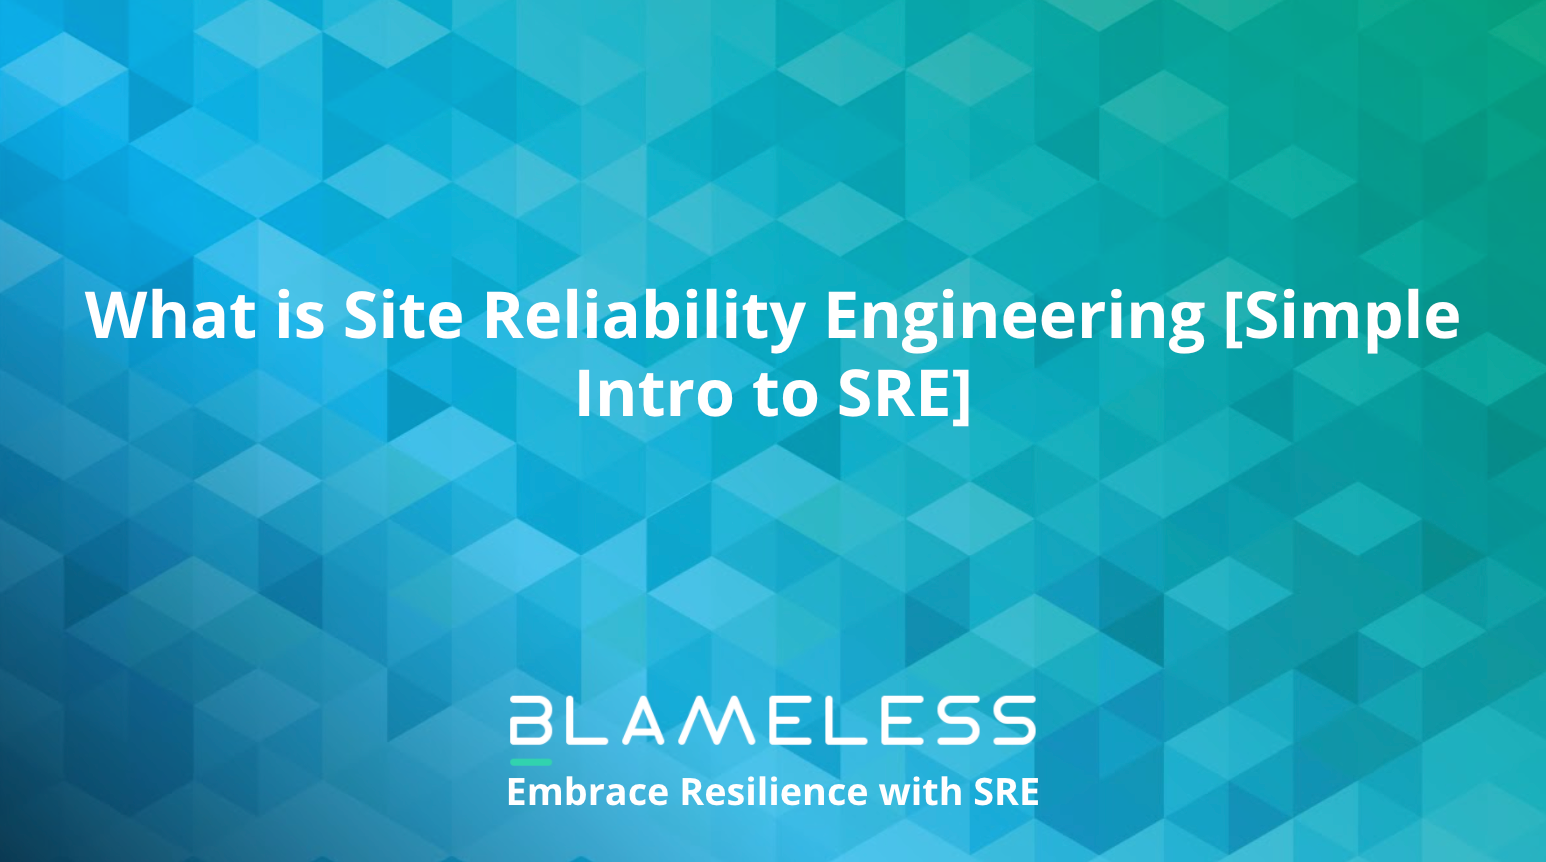 What is Site Reliability Engineering [Simple Intro to SRE]